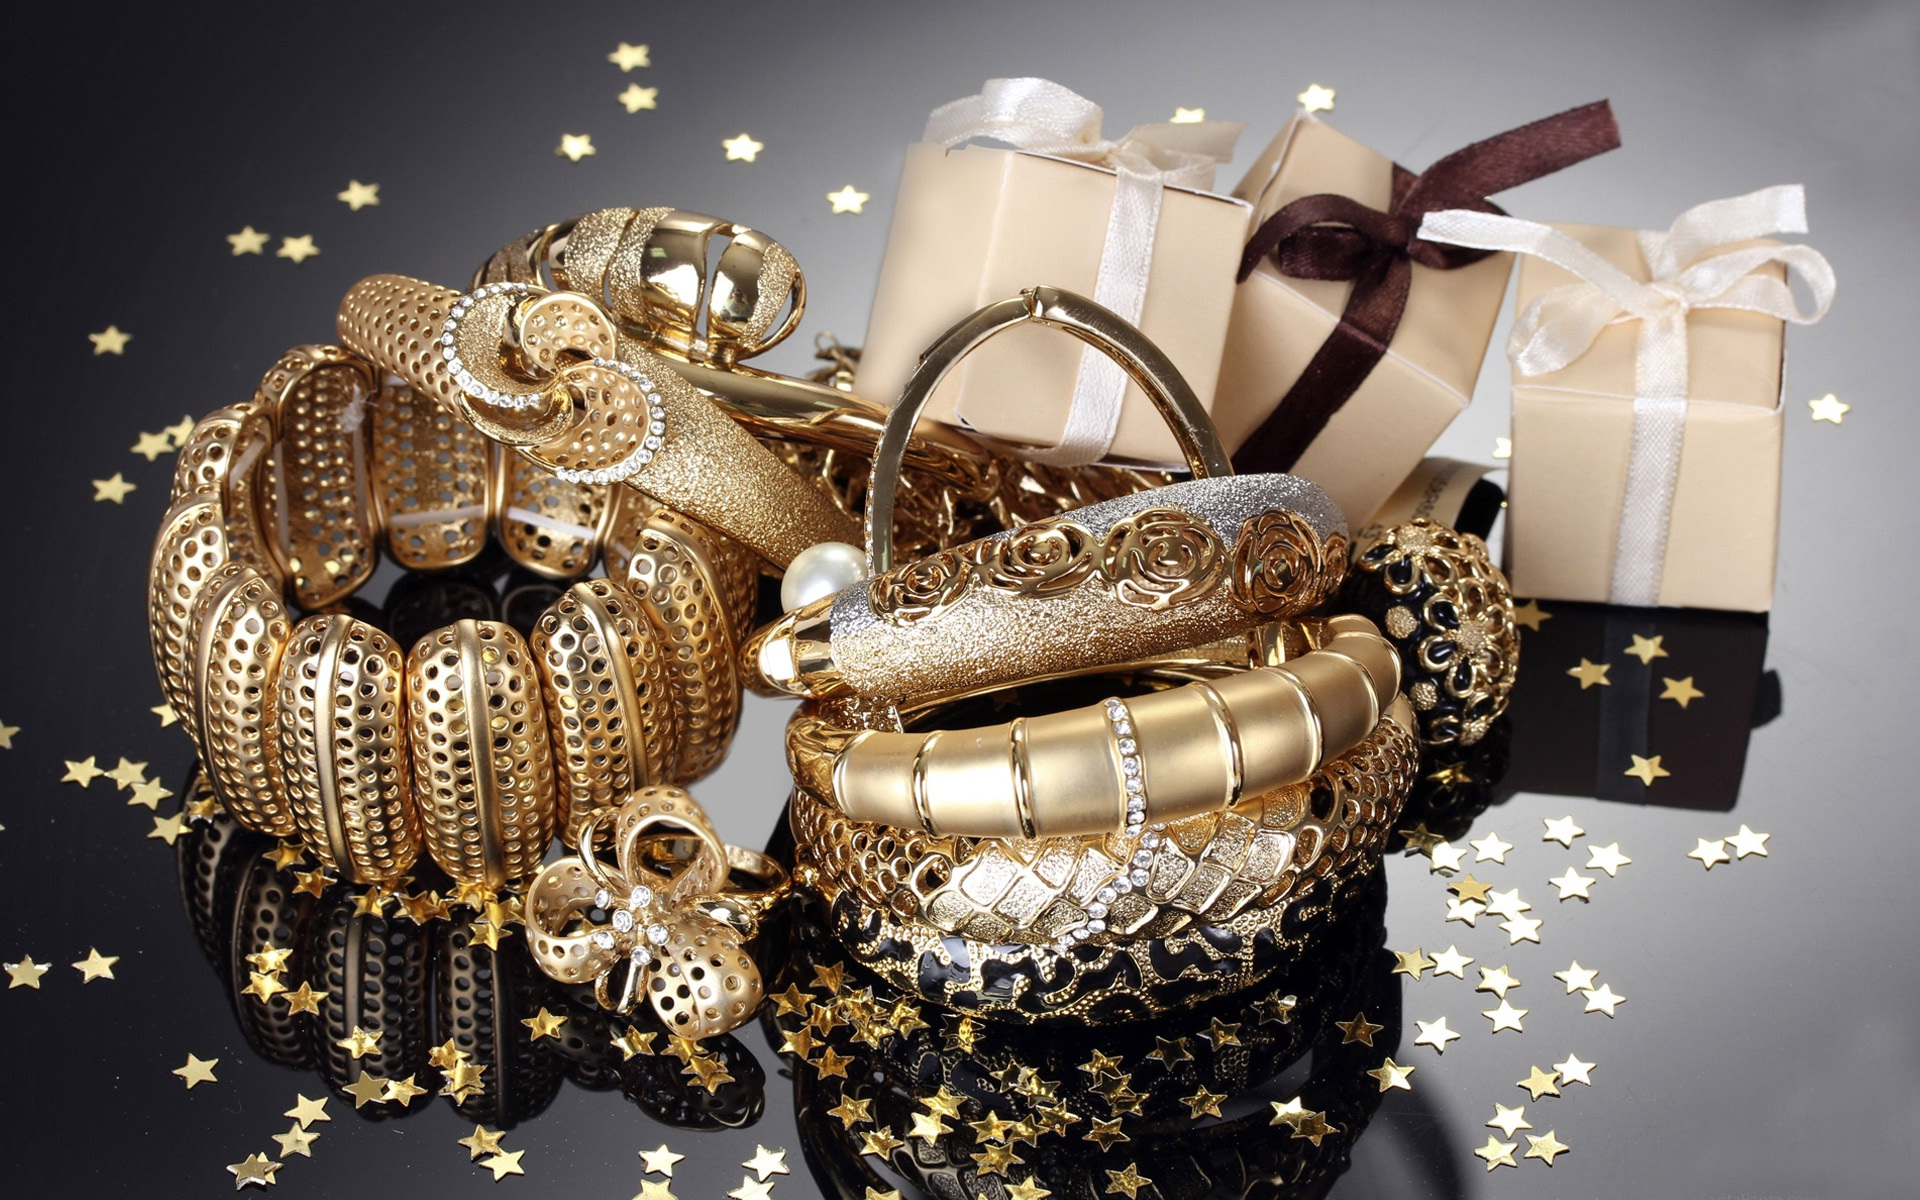 September 17, 2015 By Admin Comments Off On Gold Jewellery - Luxury Jewelry  - 1920x1200 Wallpaper - teahub.io